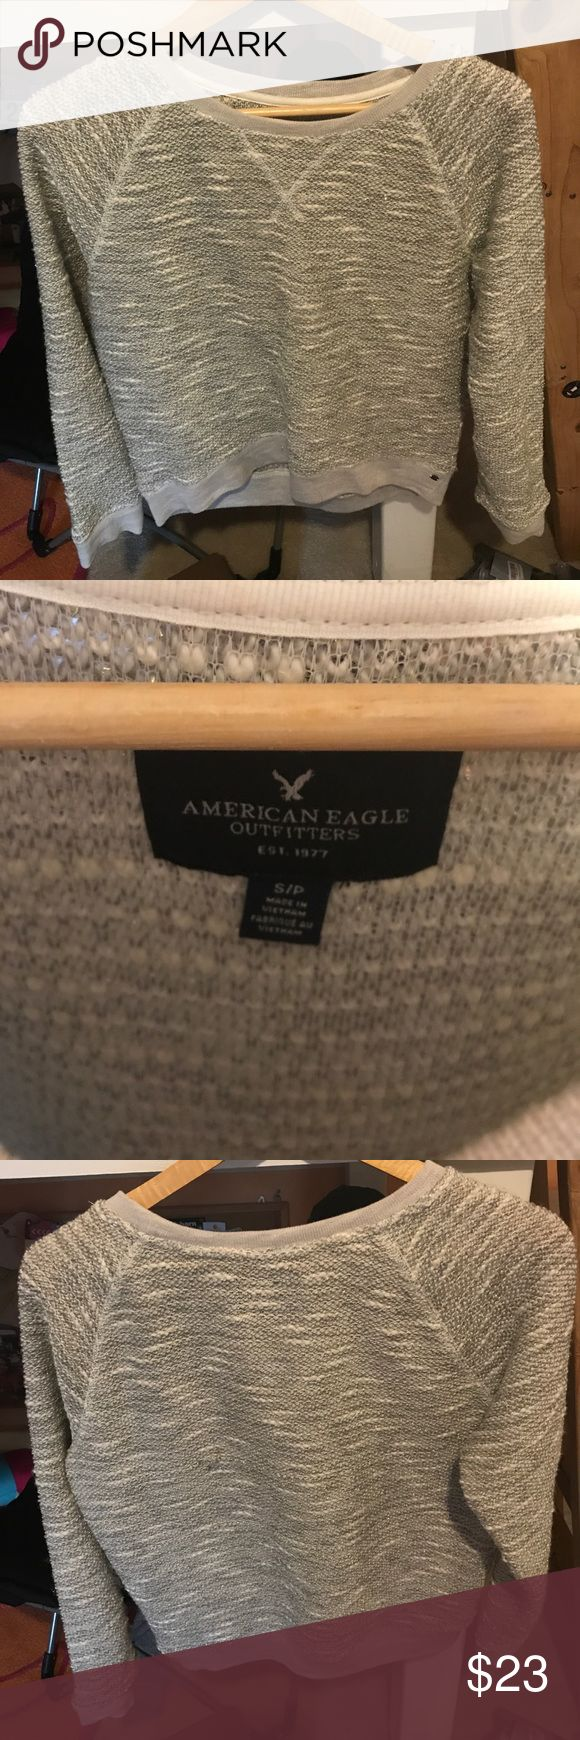 Grey American Eagle sweatshirt Slightly sparkly thread running throughout, not itchy, comfy sweater! Size S American Eagle Outfitters Tops Sweatshirts & Hoodies